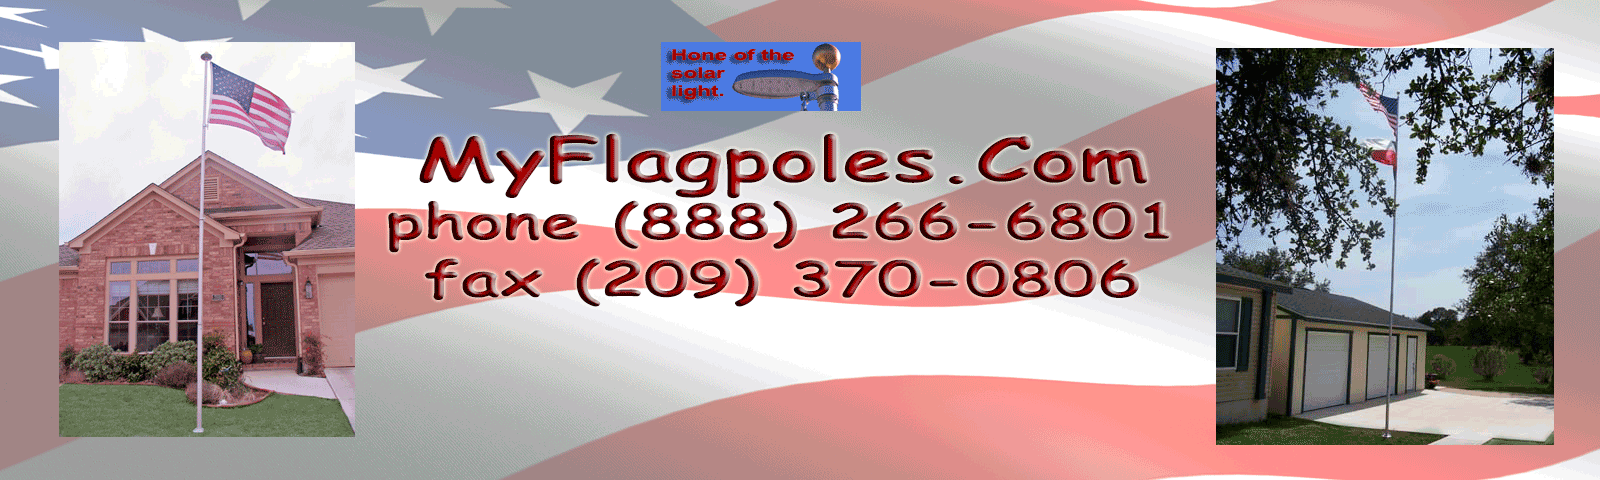 All Your Flag Pole and Flag Needs